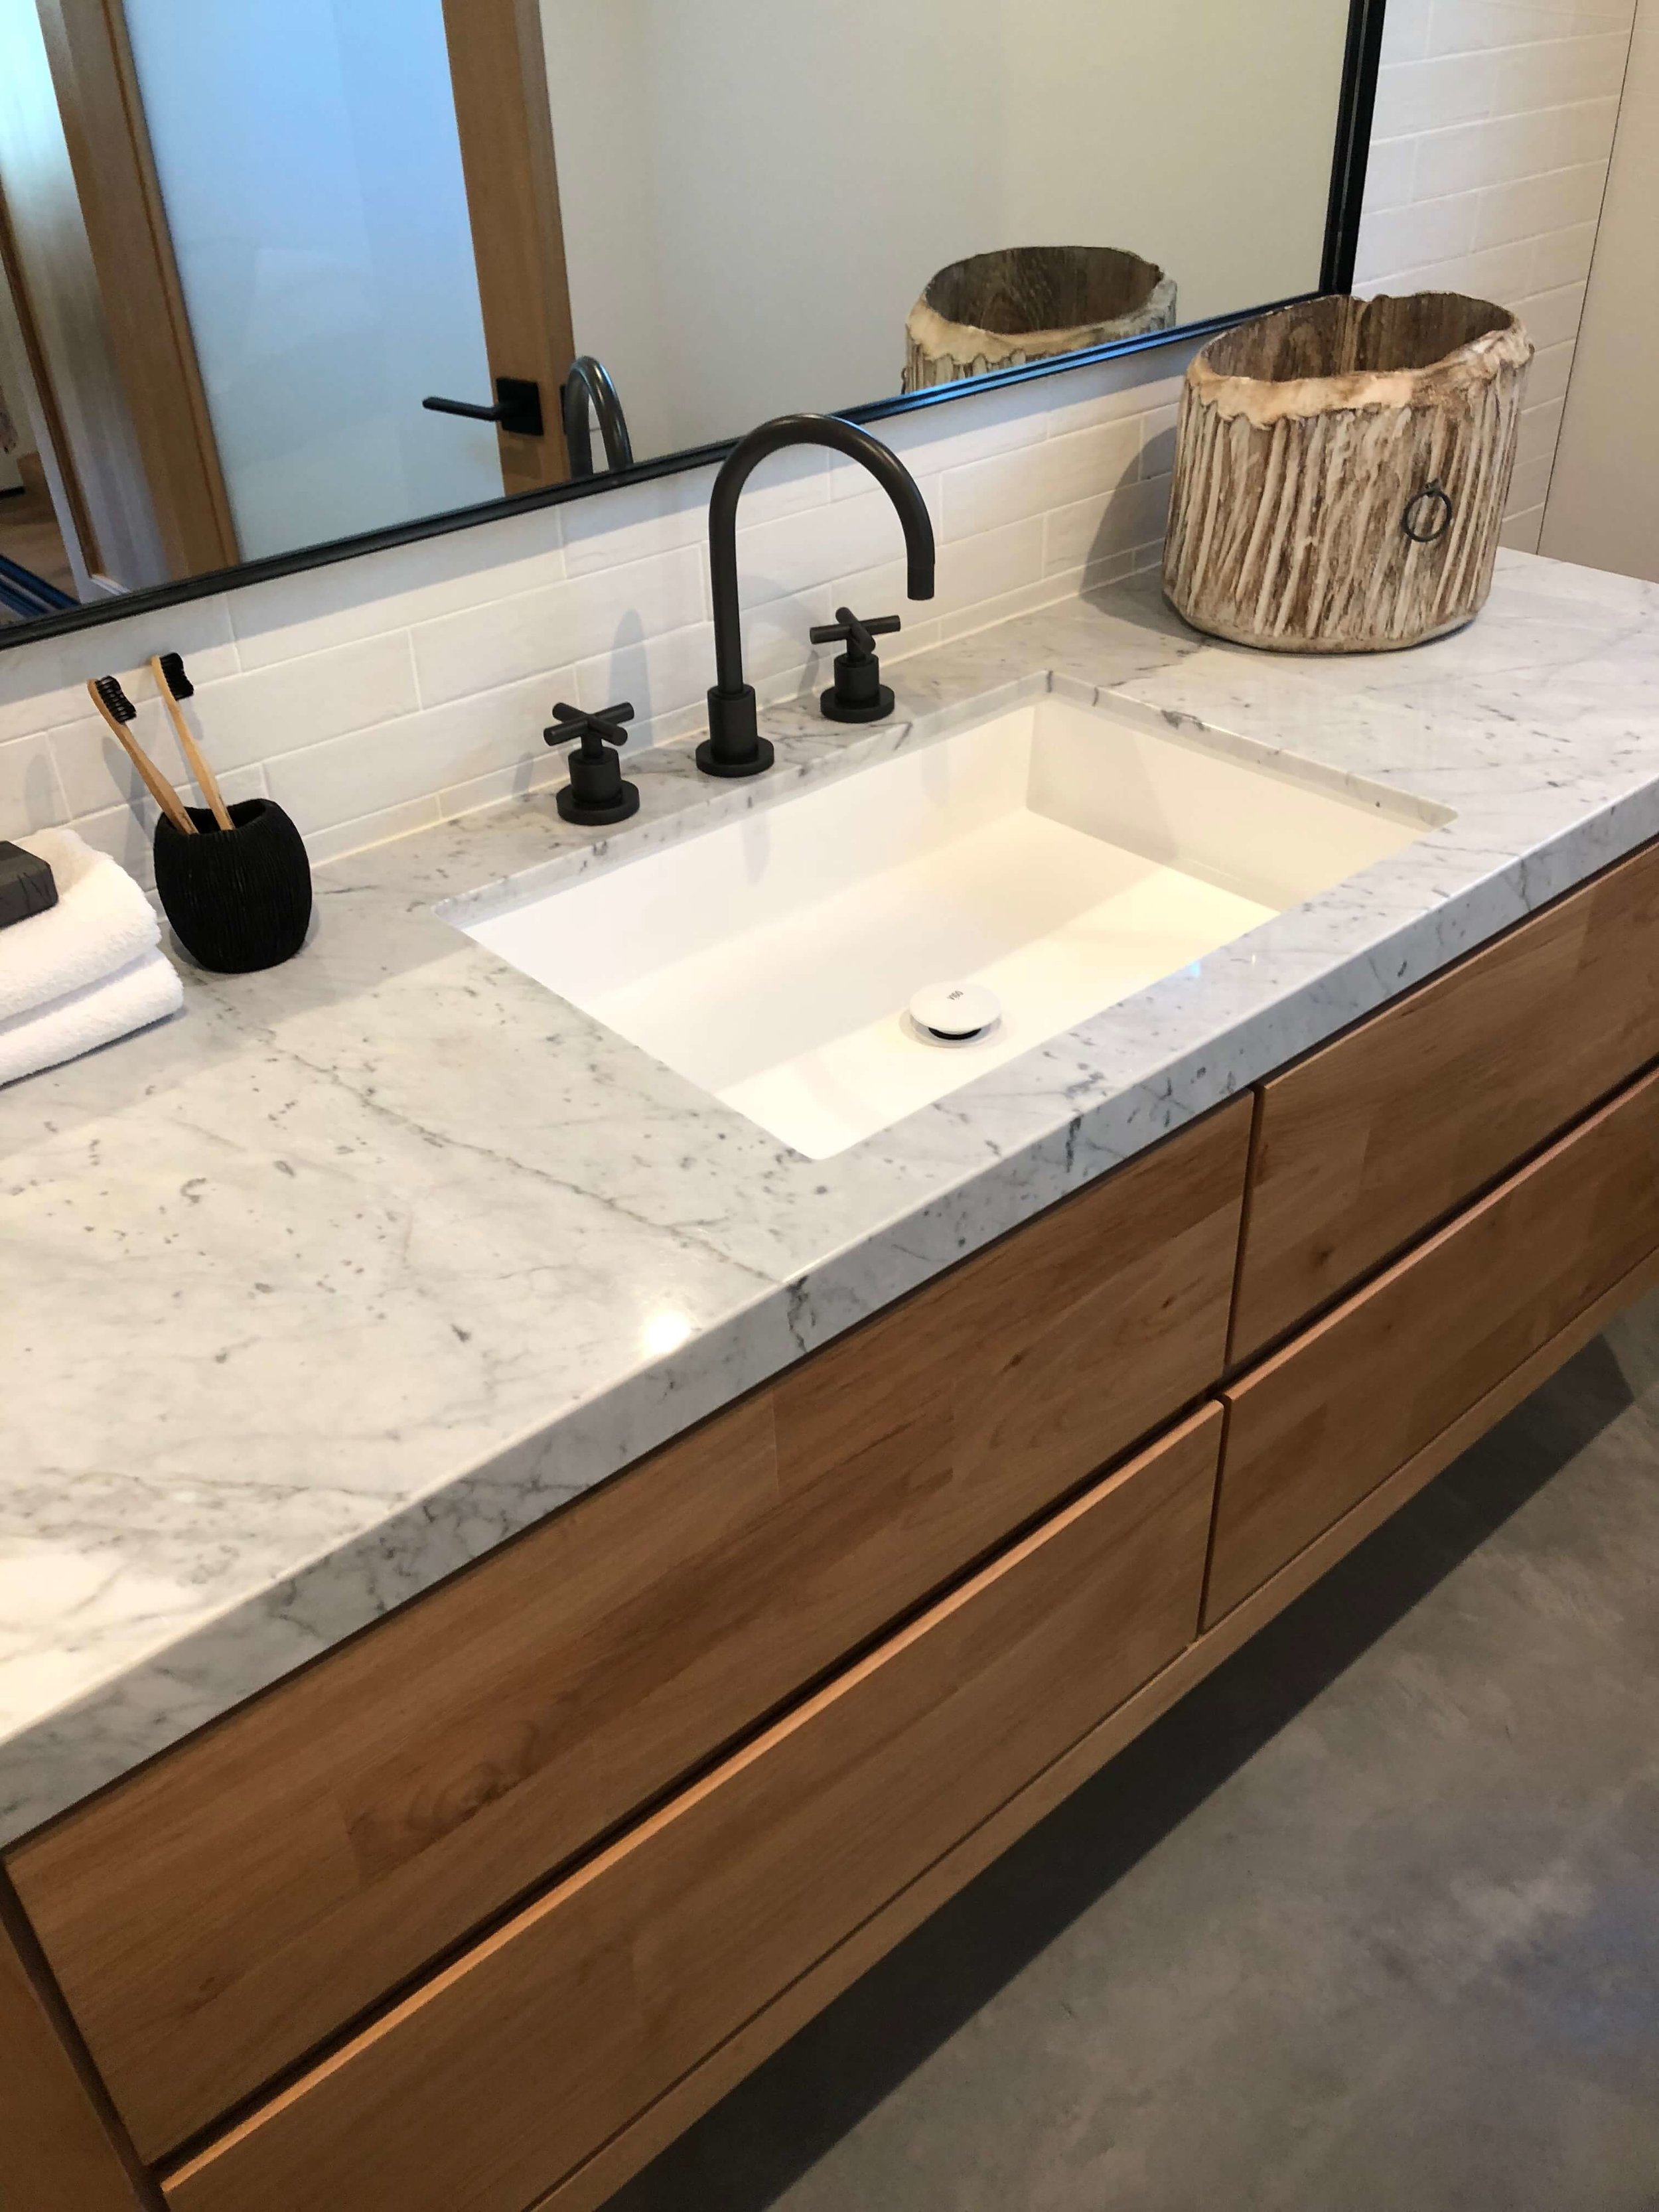 Bathroom vanity in California contemporary home, Dwell on Design's Fall Home Tour, Designer: Vitus Matare #marblevanity #bathroomideas #floatingvanity